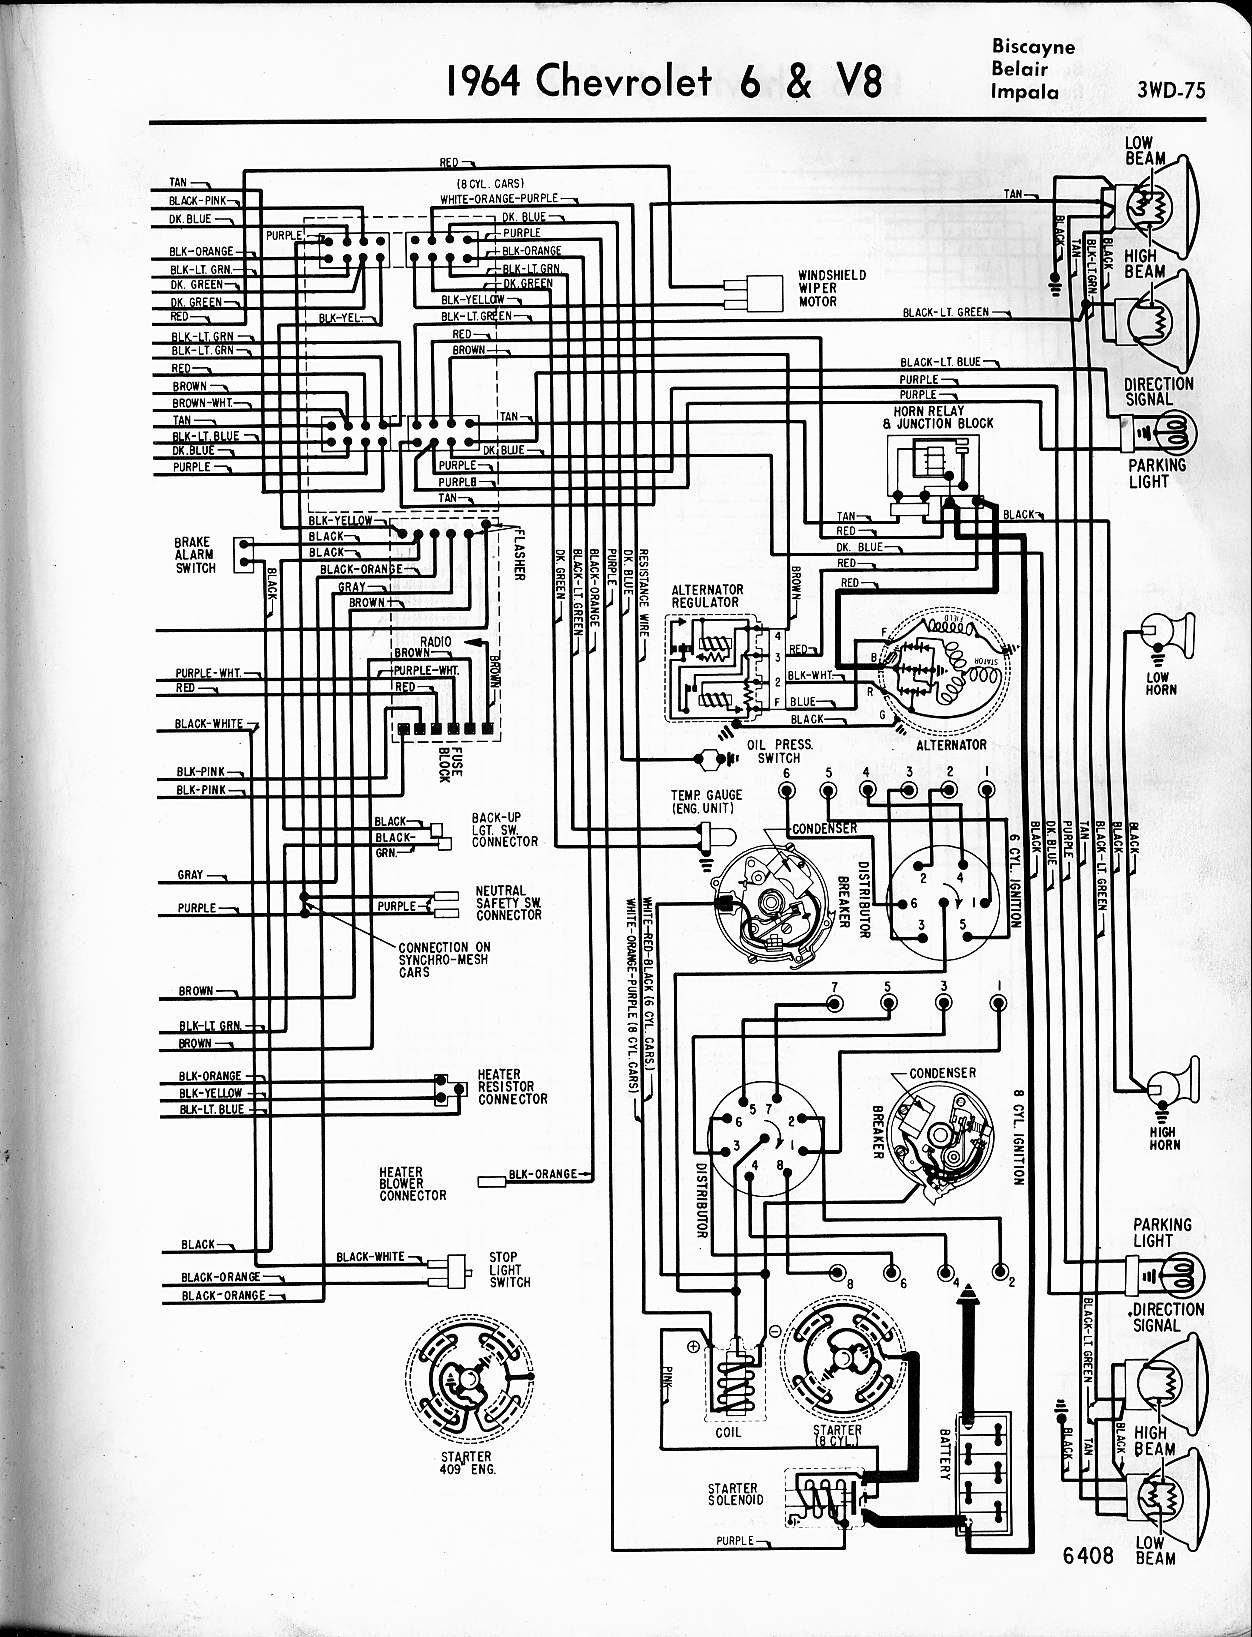 hight resolution of 57 65 chevy wiring diagrams 2005 impala fuse diagram 1964 6 v8 biscayne belair